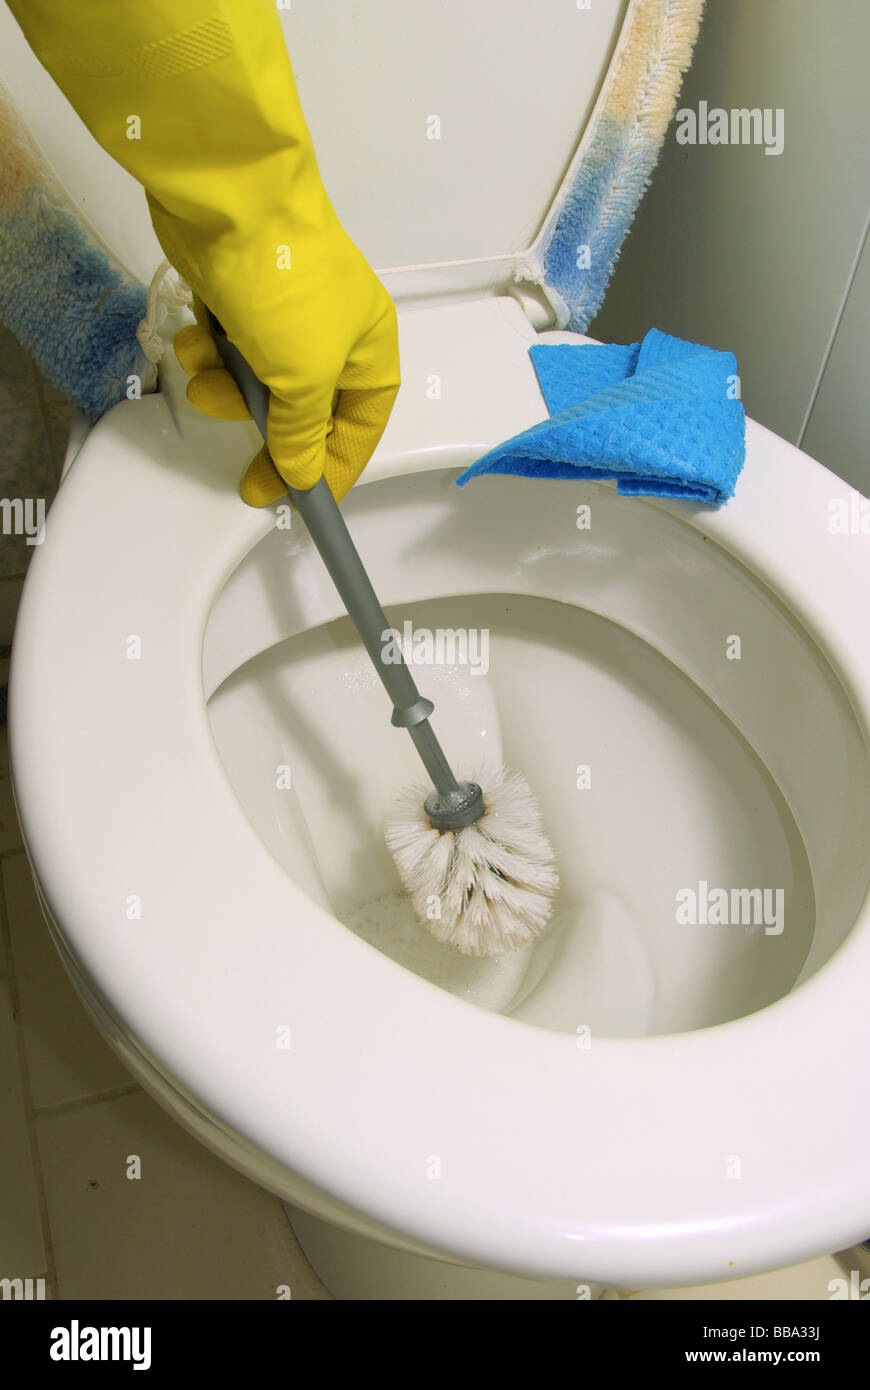 Toilette putzen toilet cleaning 05 Stock Photo